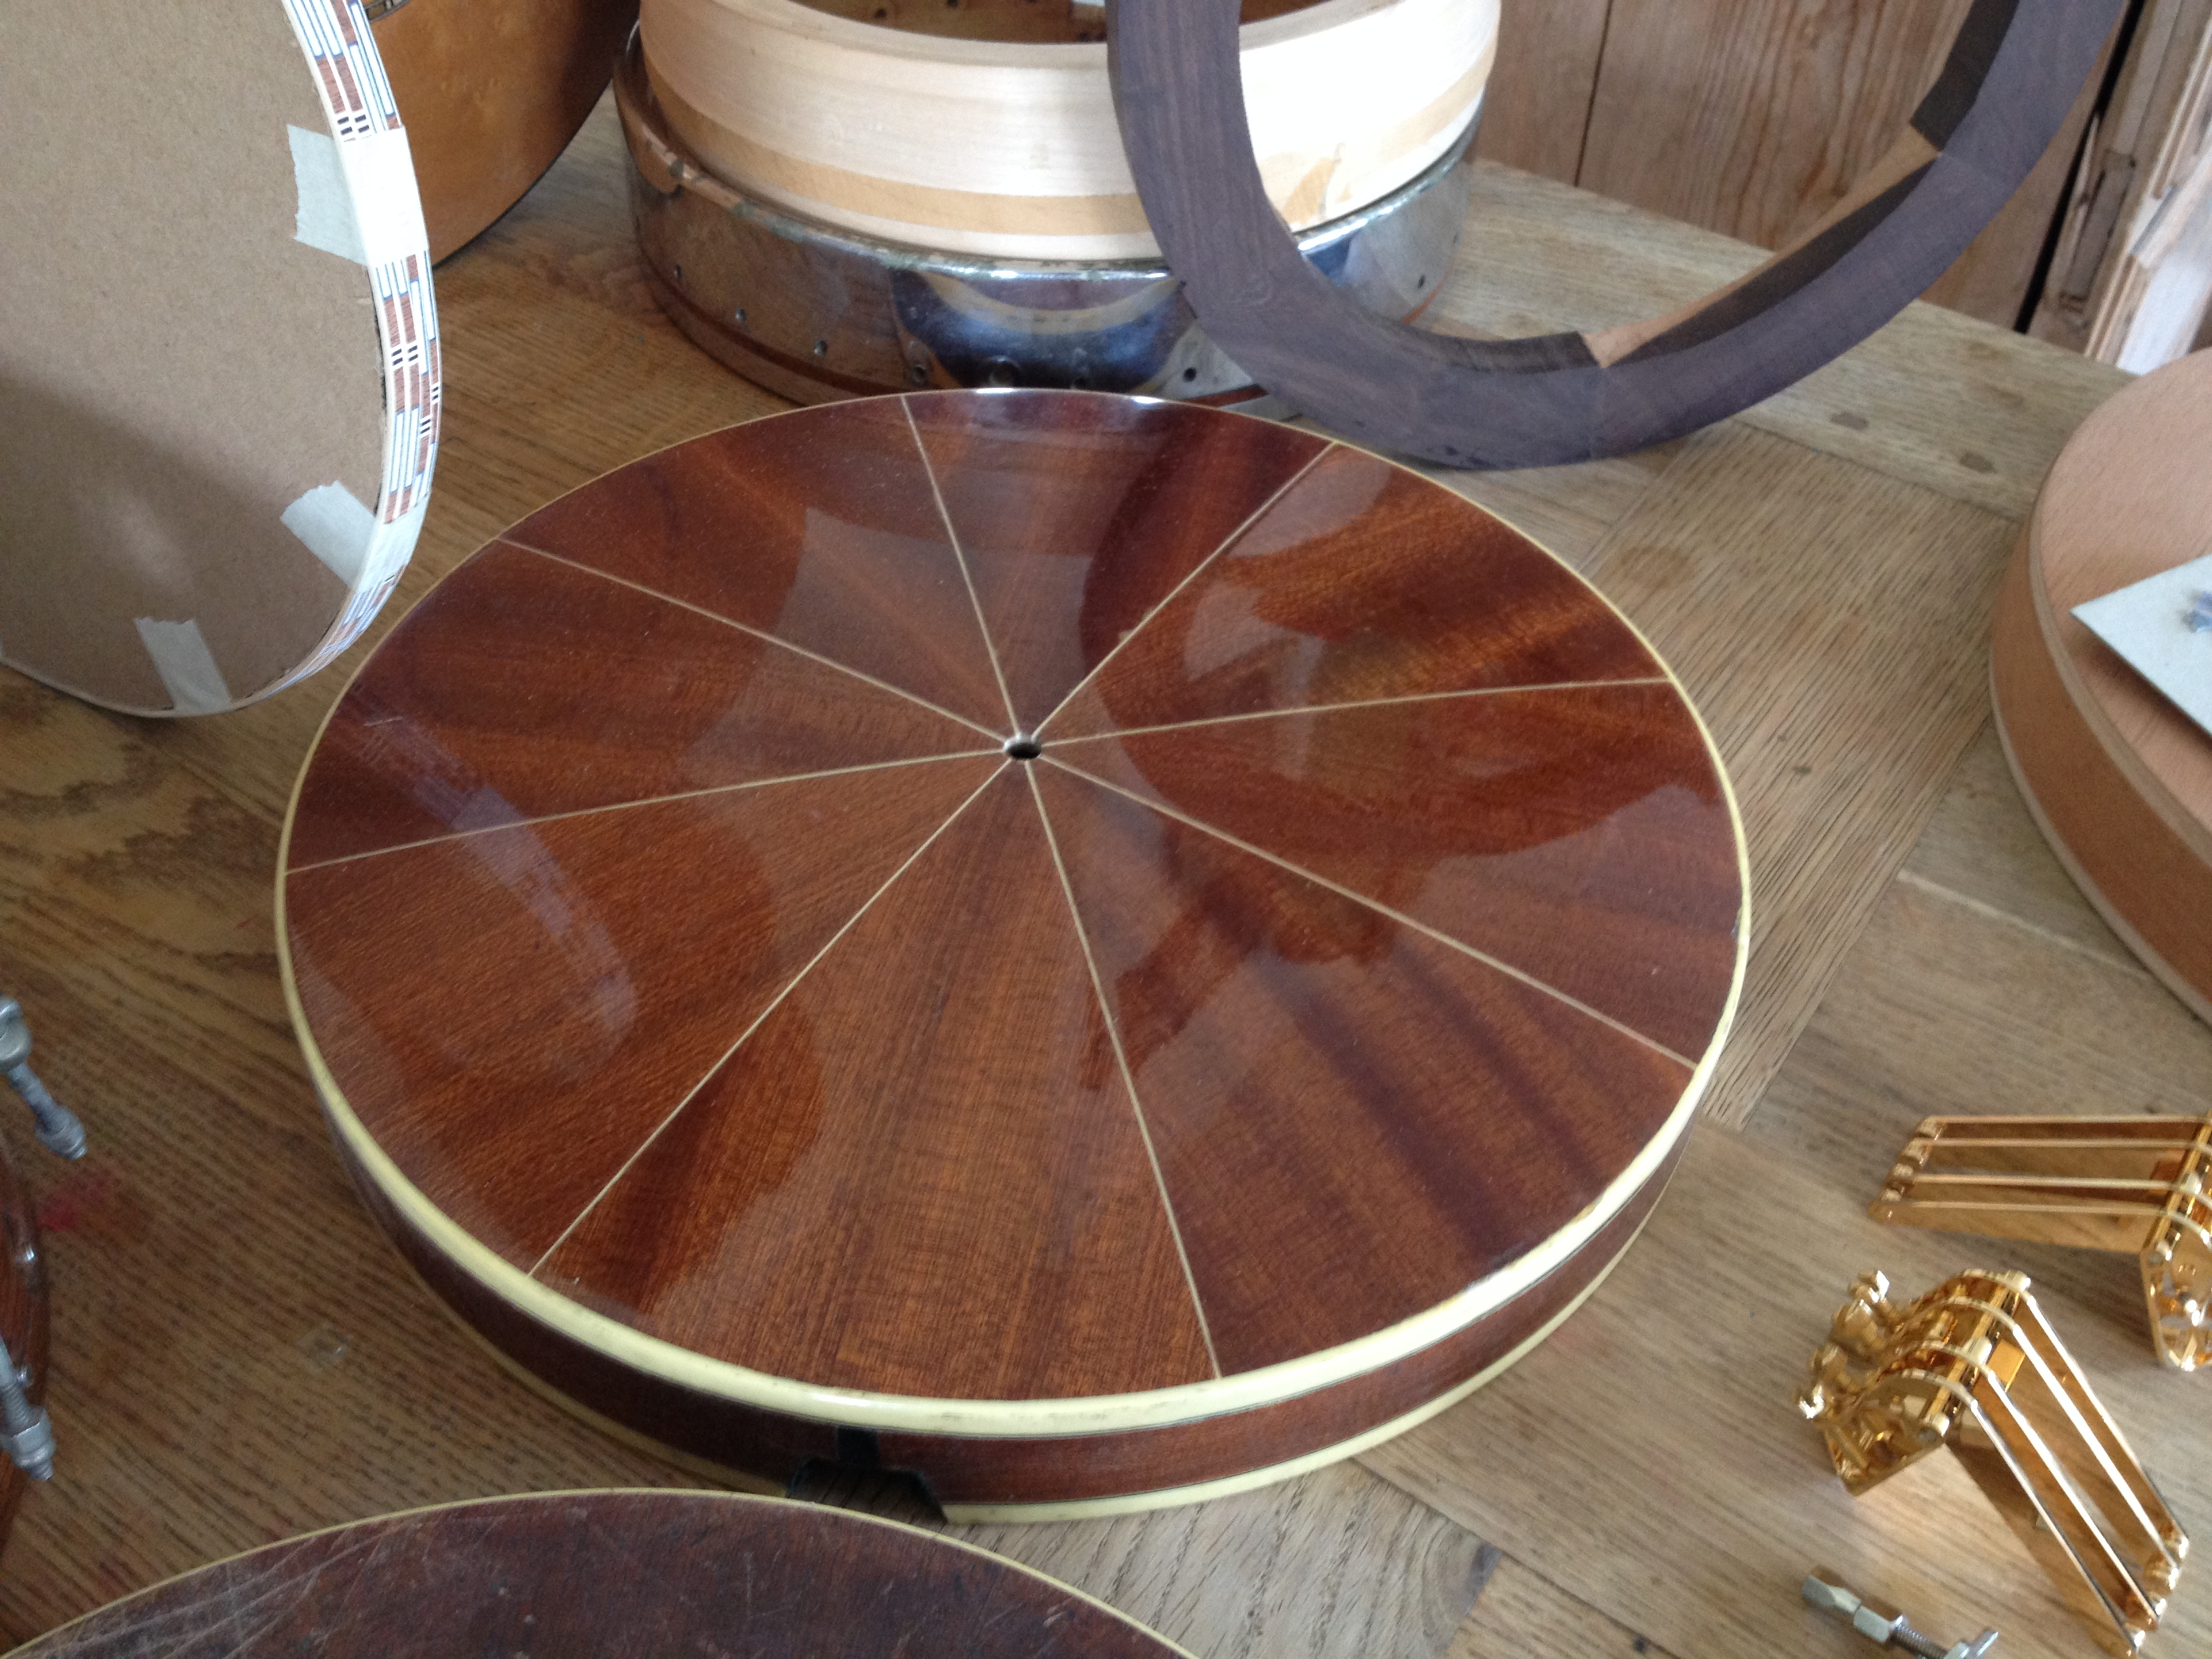 banjo resonator back with tpieces.JPG